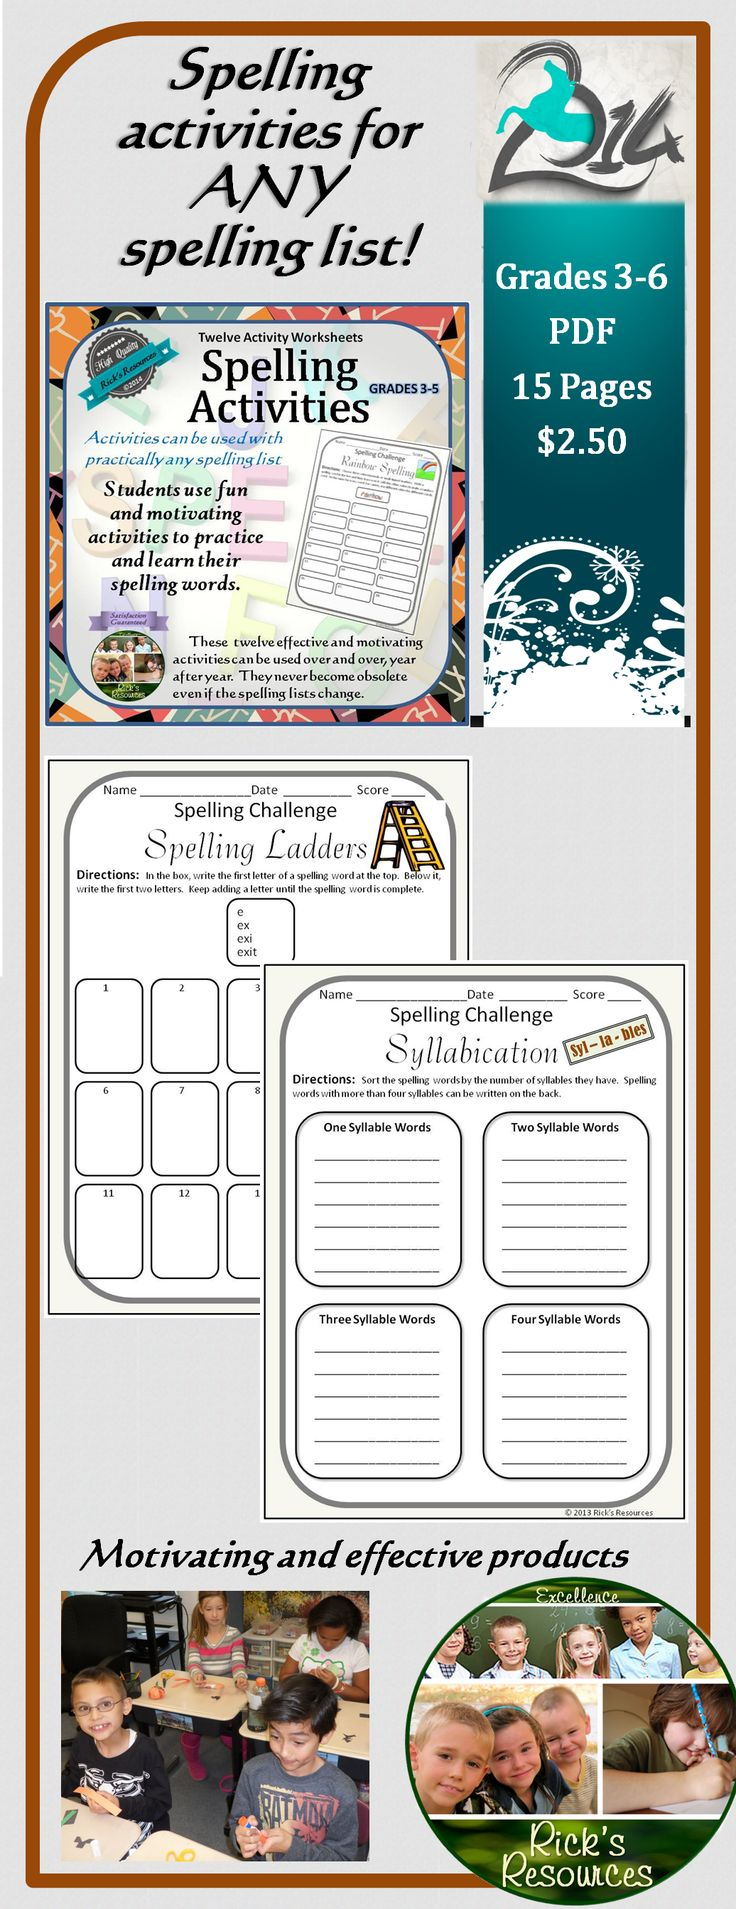 These twelve fun and motivating activities will help students practice and learn their spelling words. The activities are great for homework. school practice, review, enrichment, homeschooling. The activities can be used over and over, year after year. They never become obsolete.